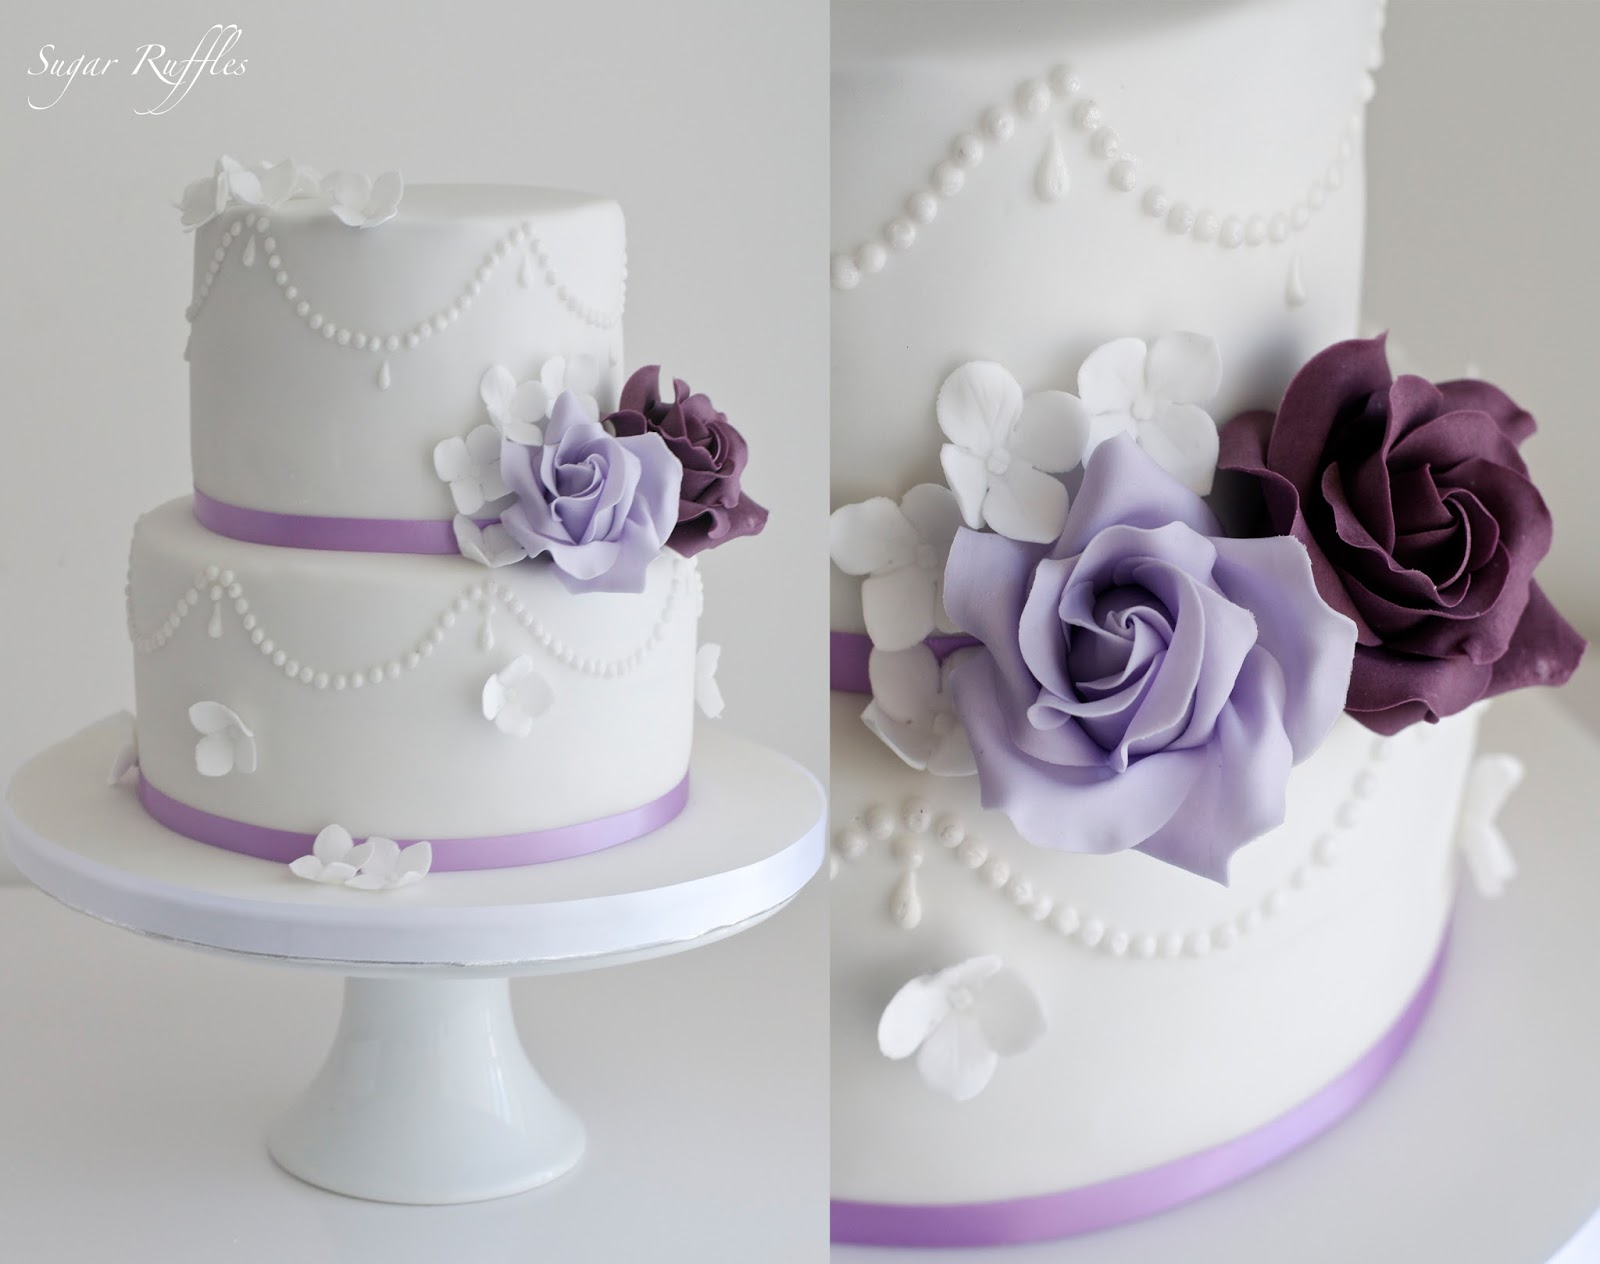 Delighted Simple Wedding Cakes Tall Naked Wedding Cake Flat Two Tier Wedding Cake Mini Wedding Cakes Young Wedding Cake Drawing BrownHow Much Is A Wedding Cake Sugar Ruffles, Elegant Wedding Cakes. Barrow In Furness And The ..